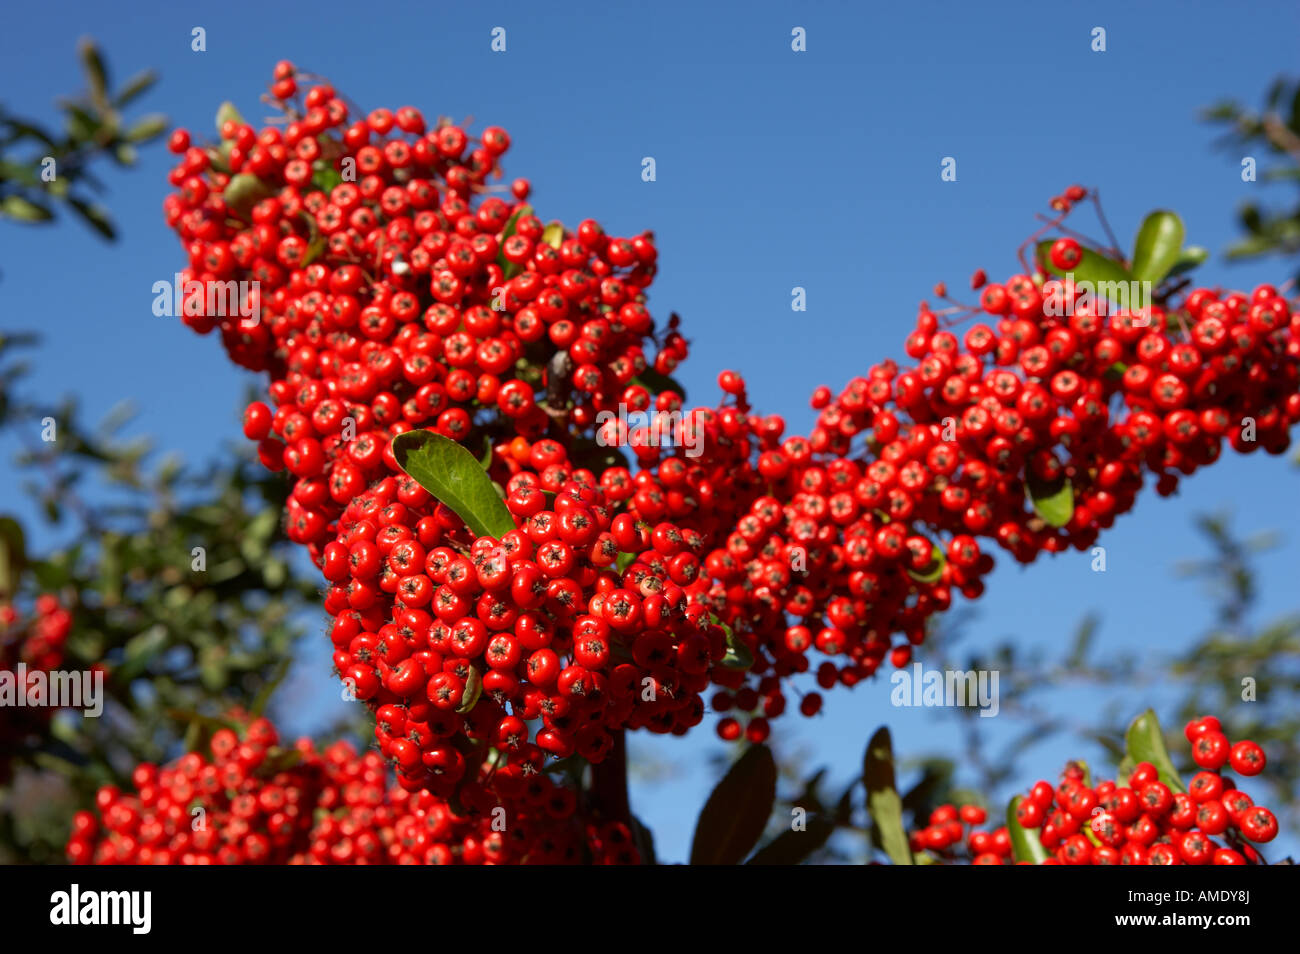 RED BERRIES ON PYRACANTHA BUSH - Stock Image